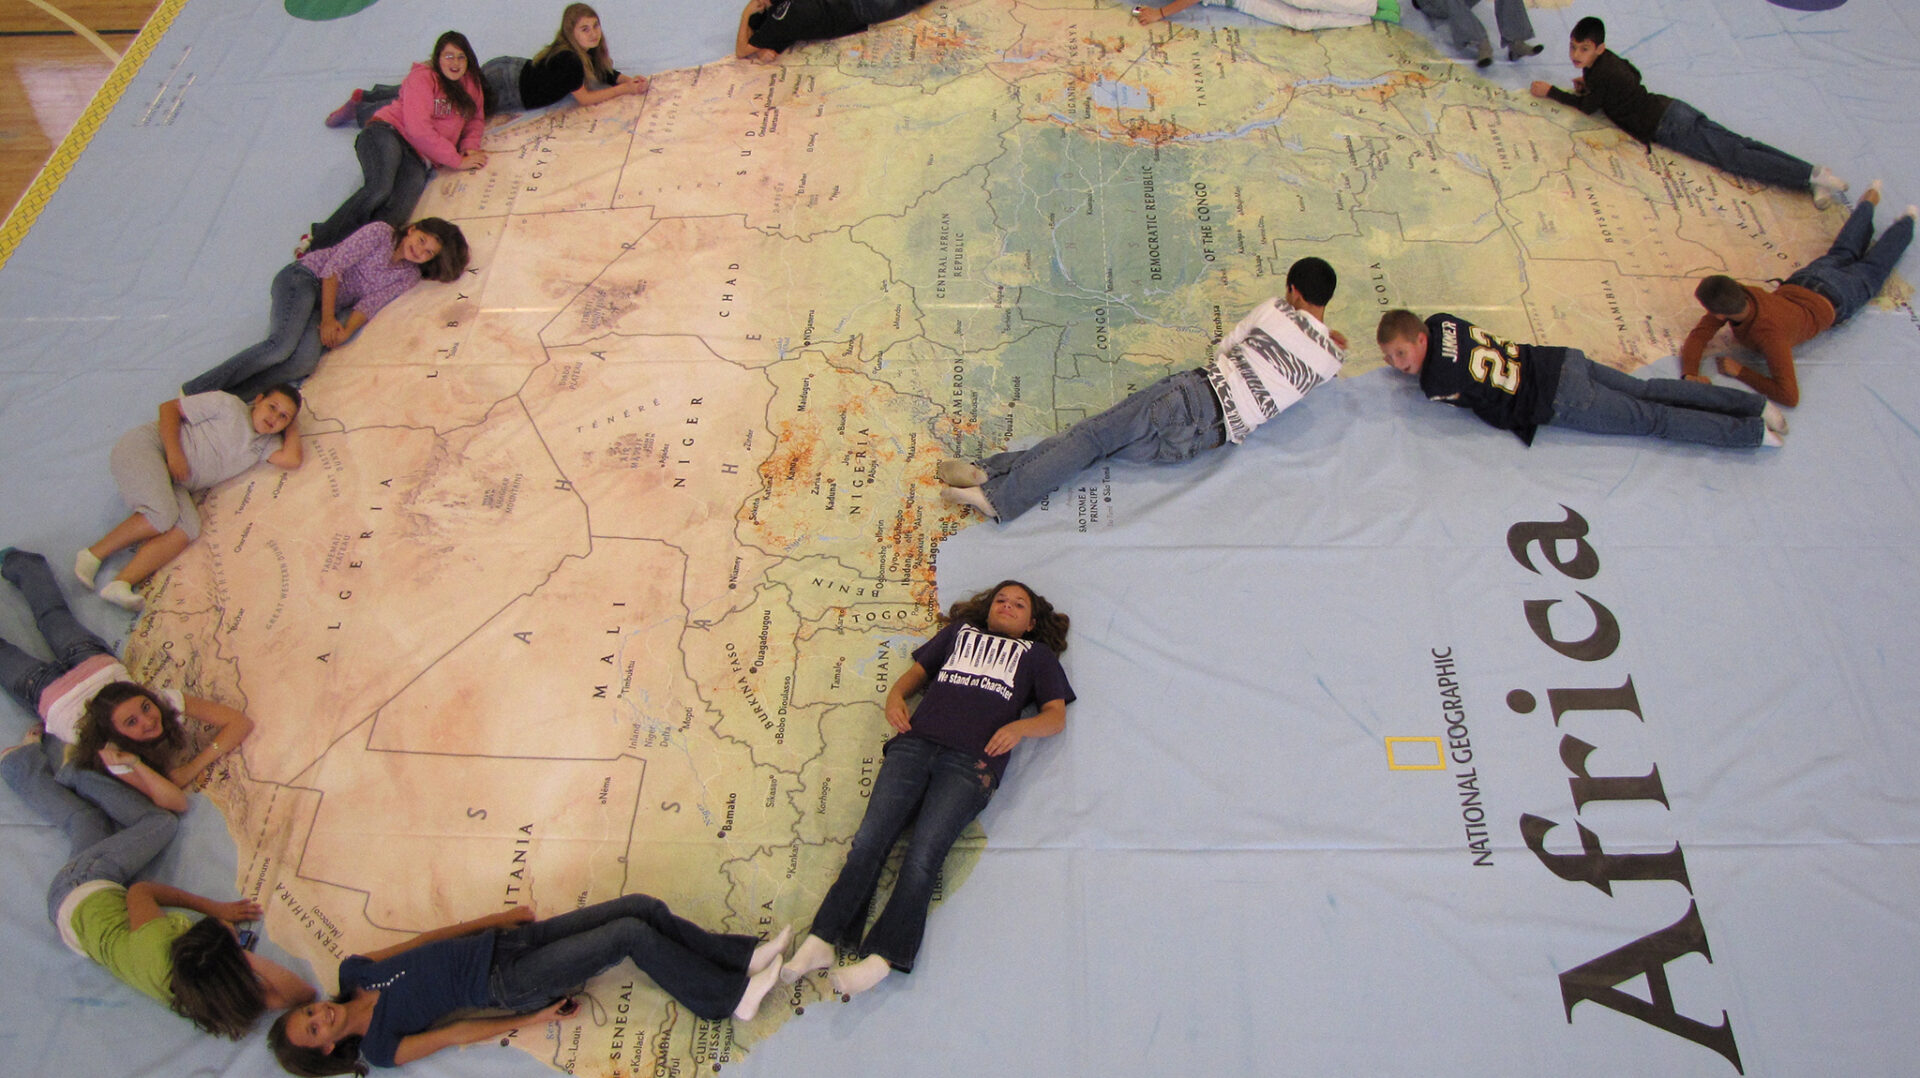 The Mississippi Geographic Alliance at the University of Mississippi is bringing the world's largest map of Africa to schools in Oxford and Lafayette County, among other locations across the state this month. Photo courtesy of Paul Schoenike